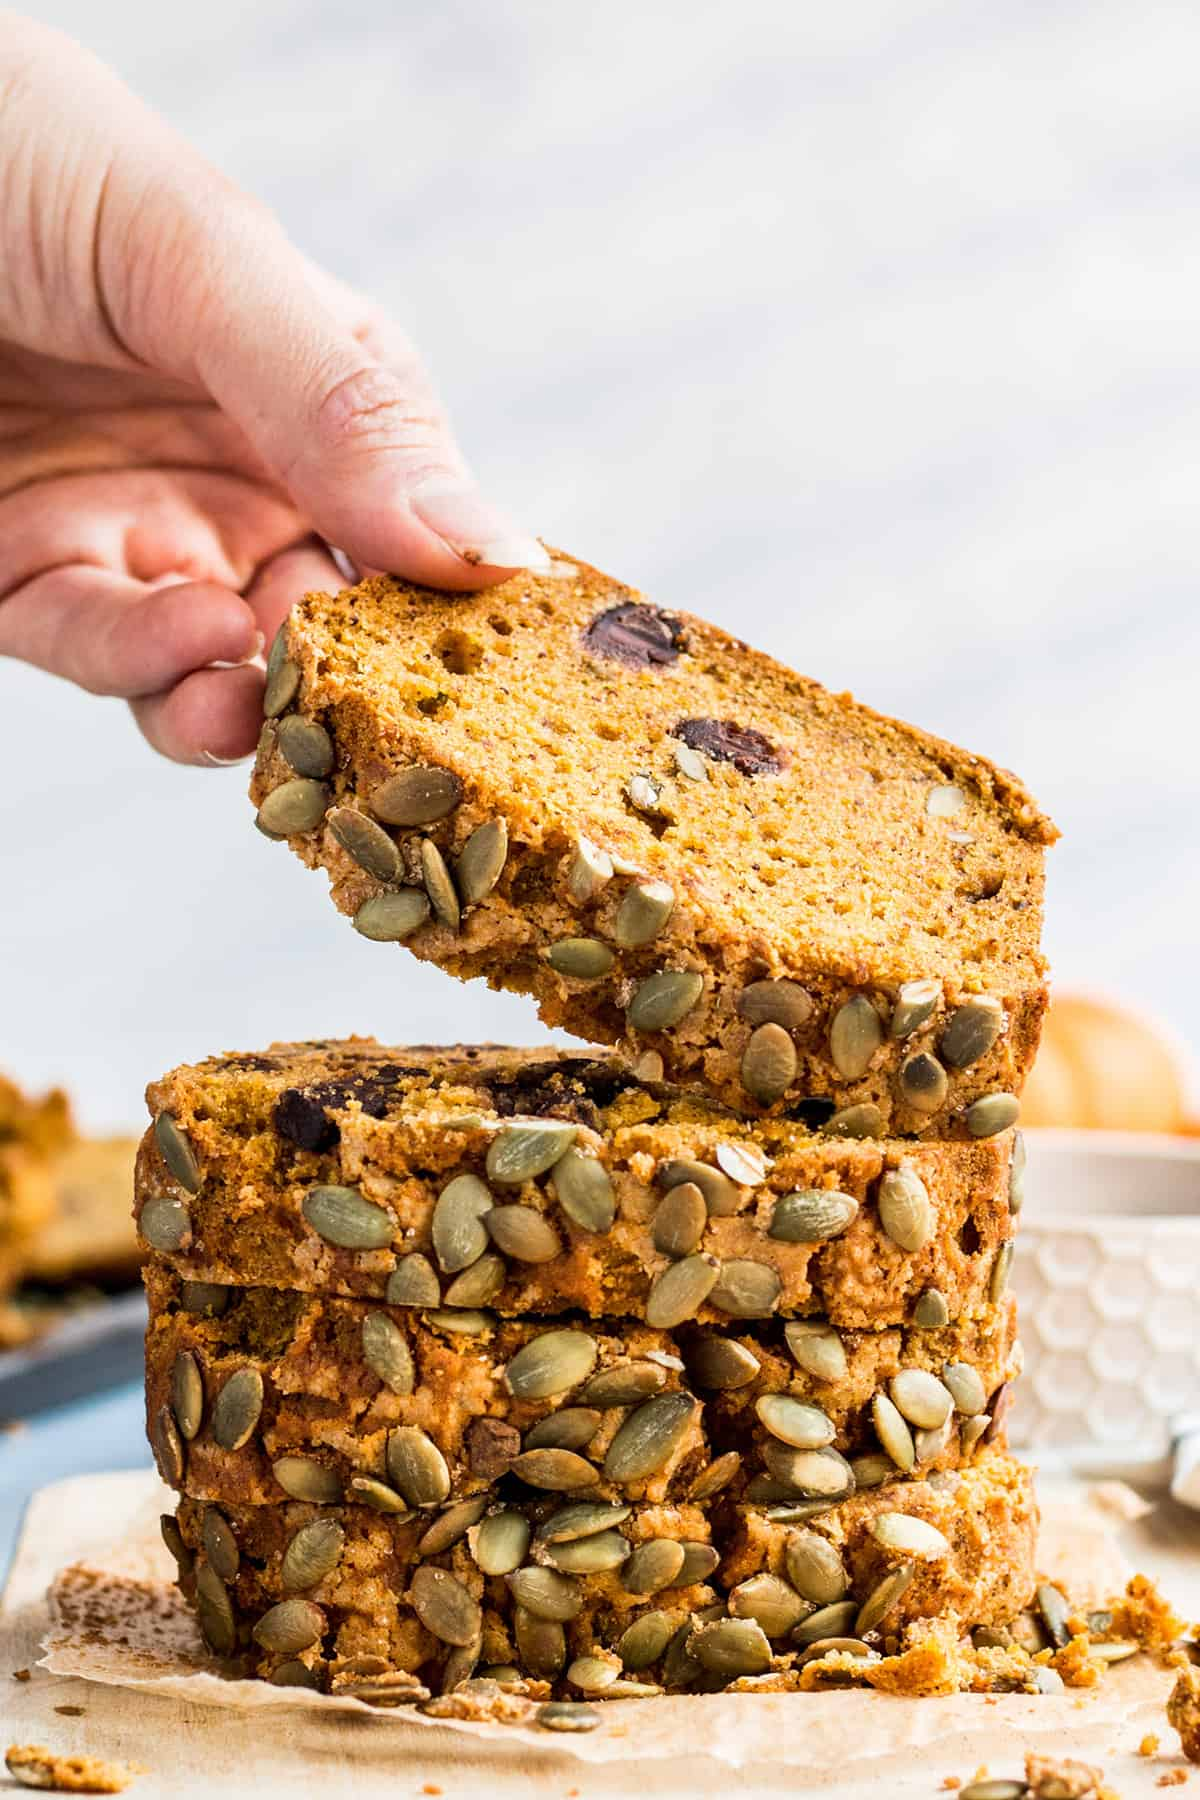 A hand picking up a piece of vegan pumpkin bread from a stack of four pieces of pumpkin bread on parchment paper.